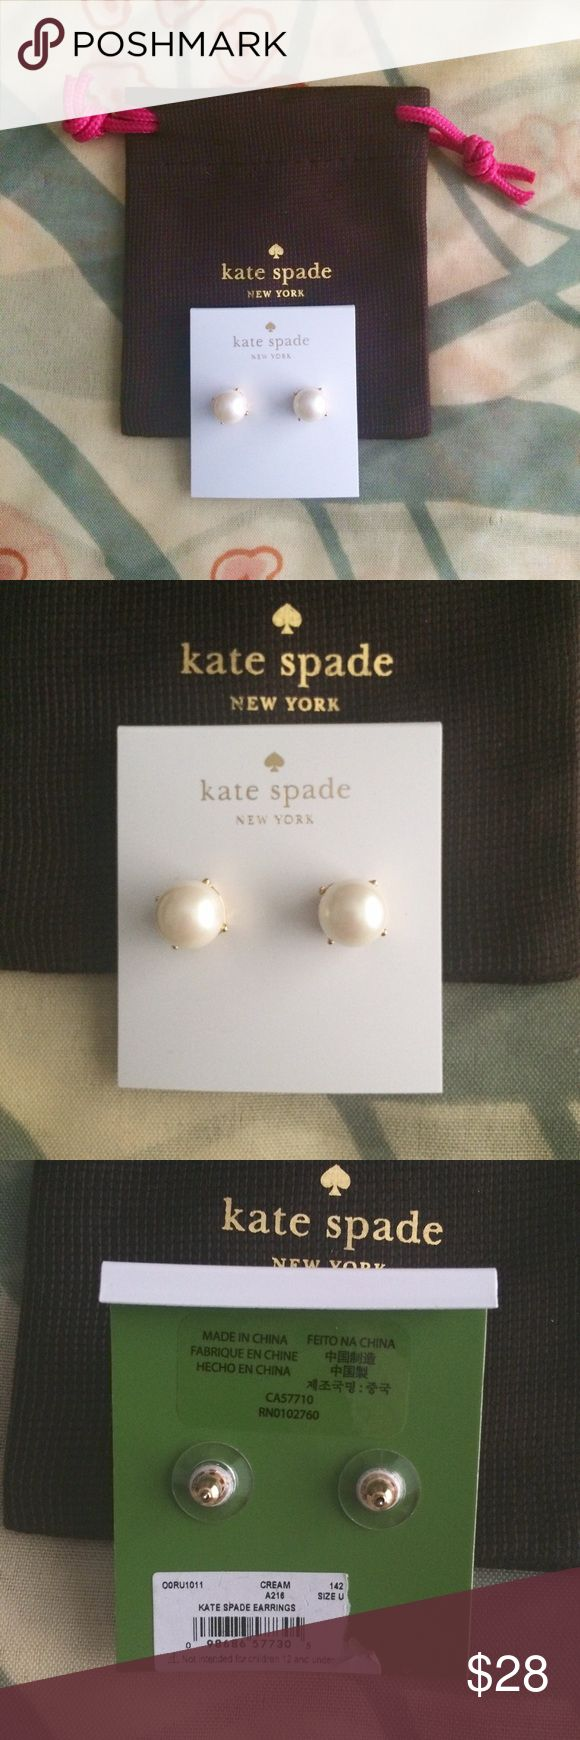 KSNY pearl stud earrings Authentic Kate Spade pearl studs / earrings; brand new; includes dust bag as pictured. kate spade Jewelry Earrings